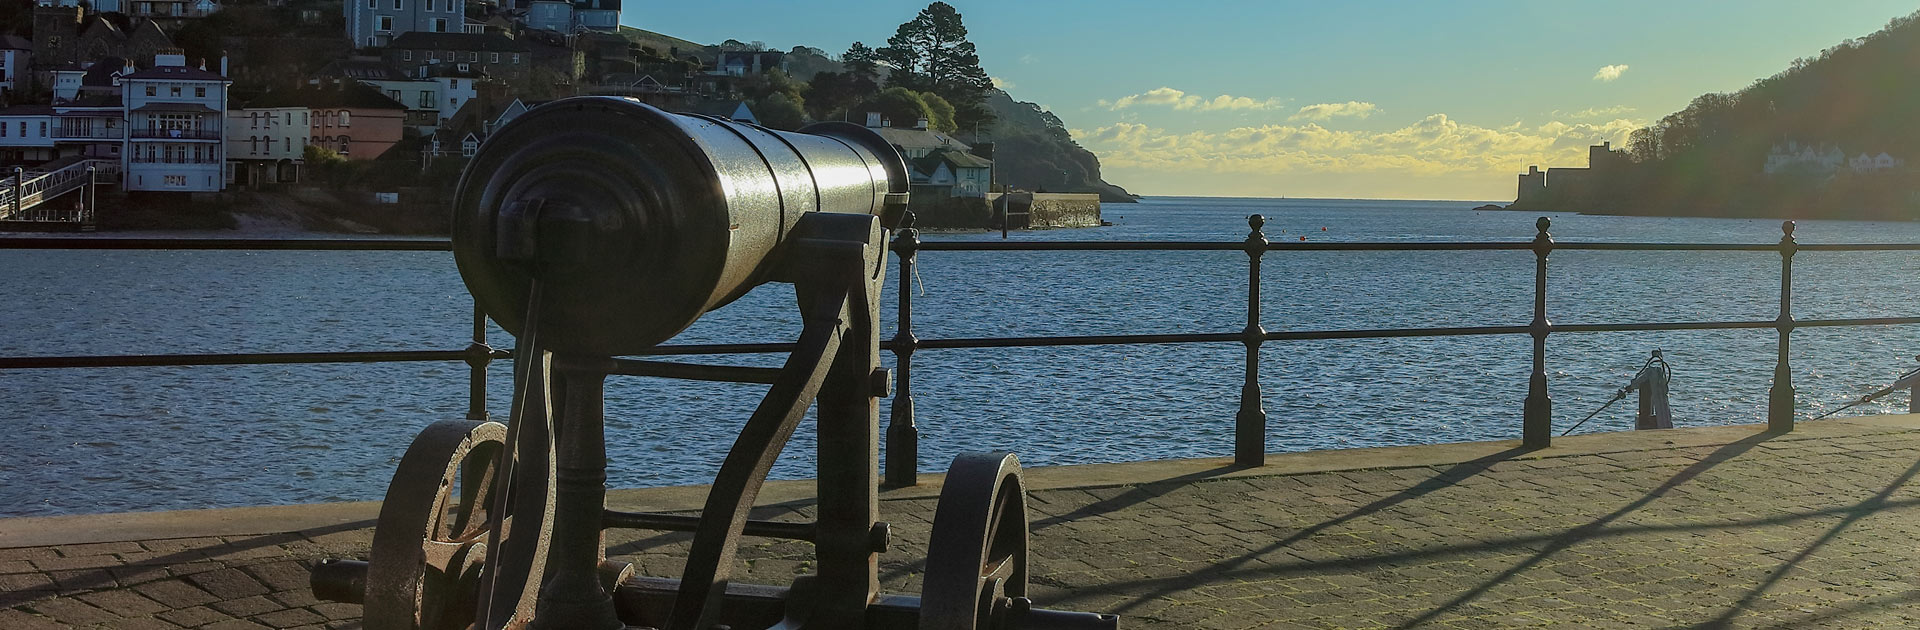 Dartmouth Cannon Looking Out To Sea